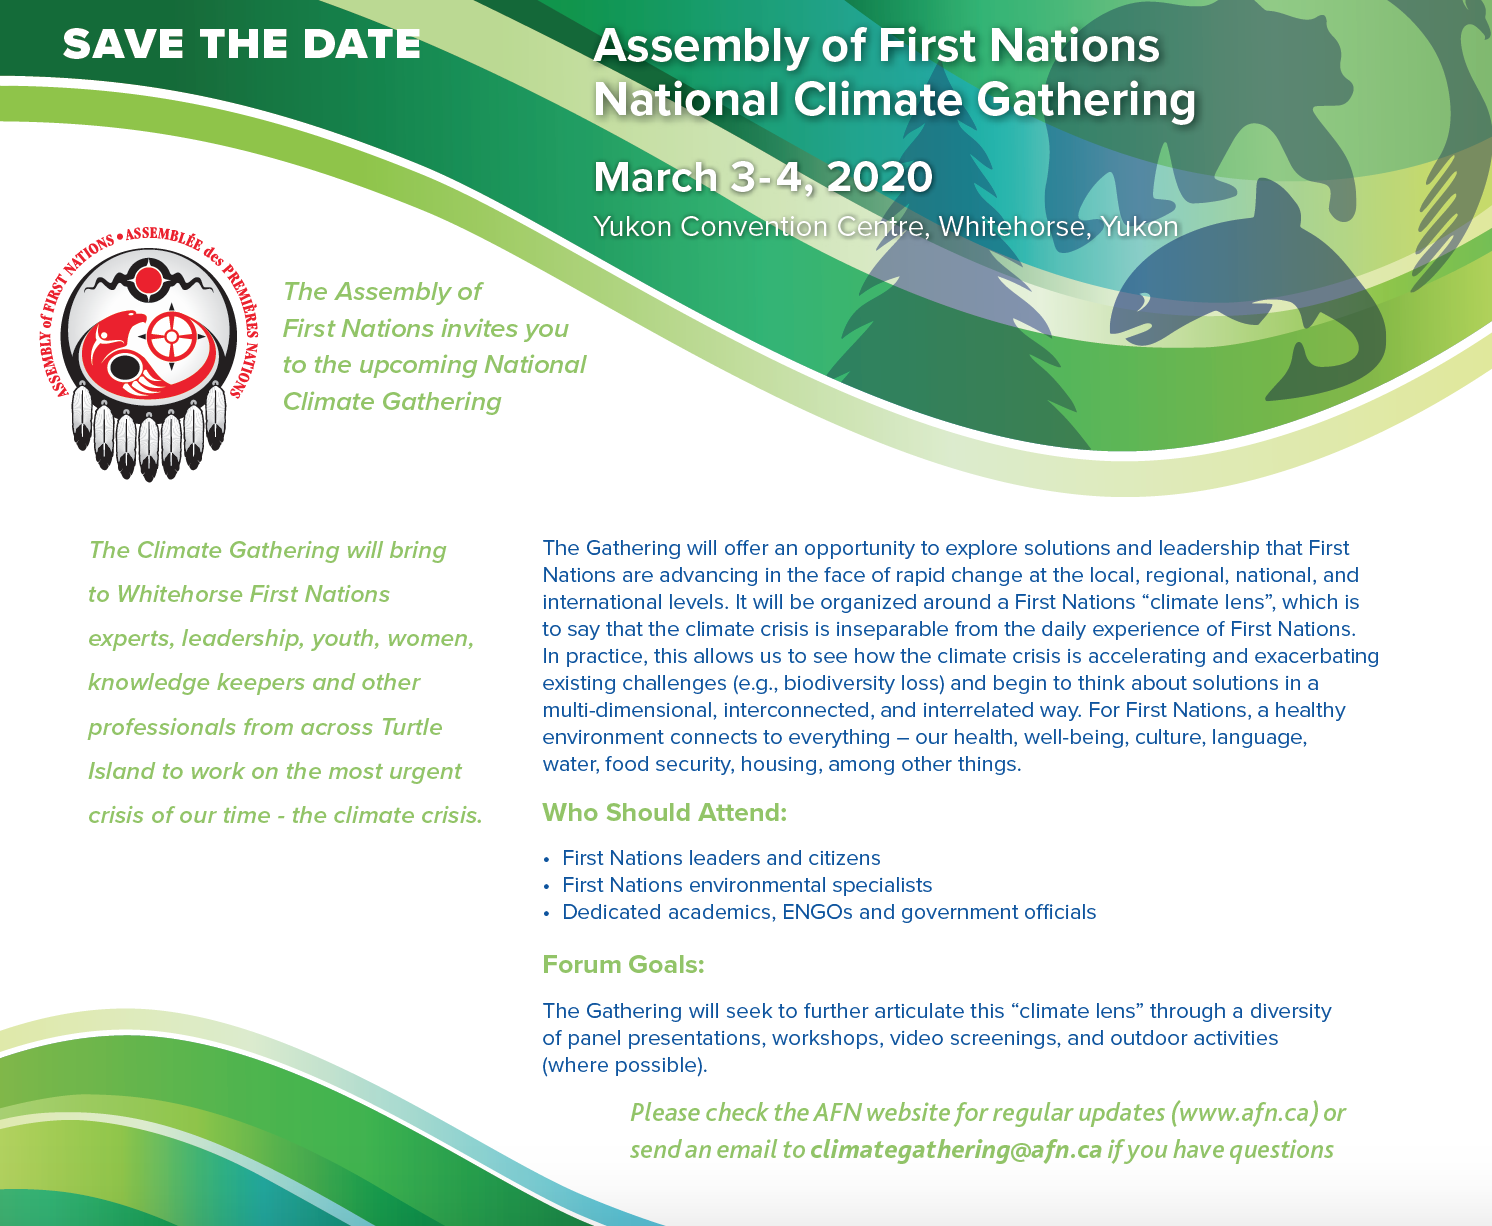 AFN National Climate Gathering